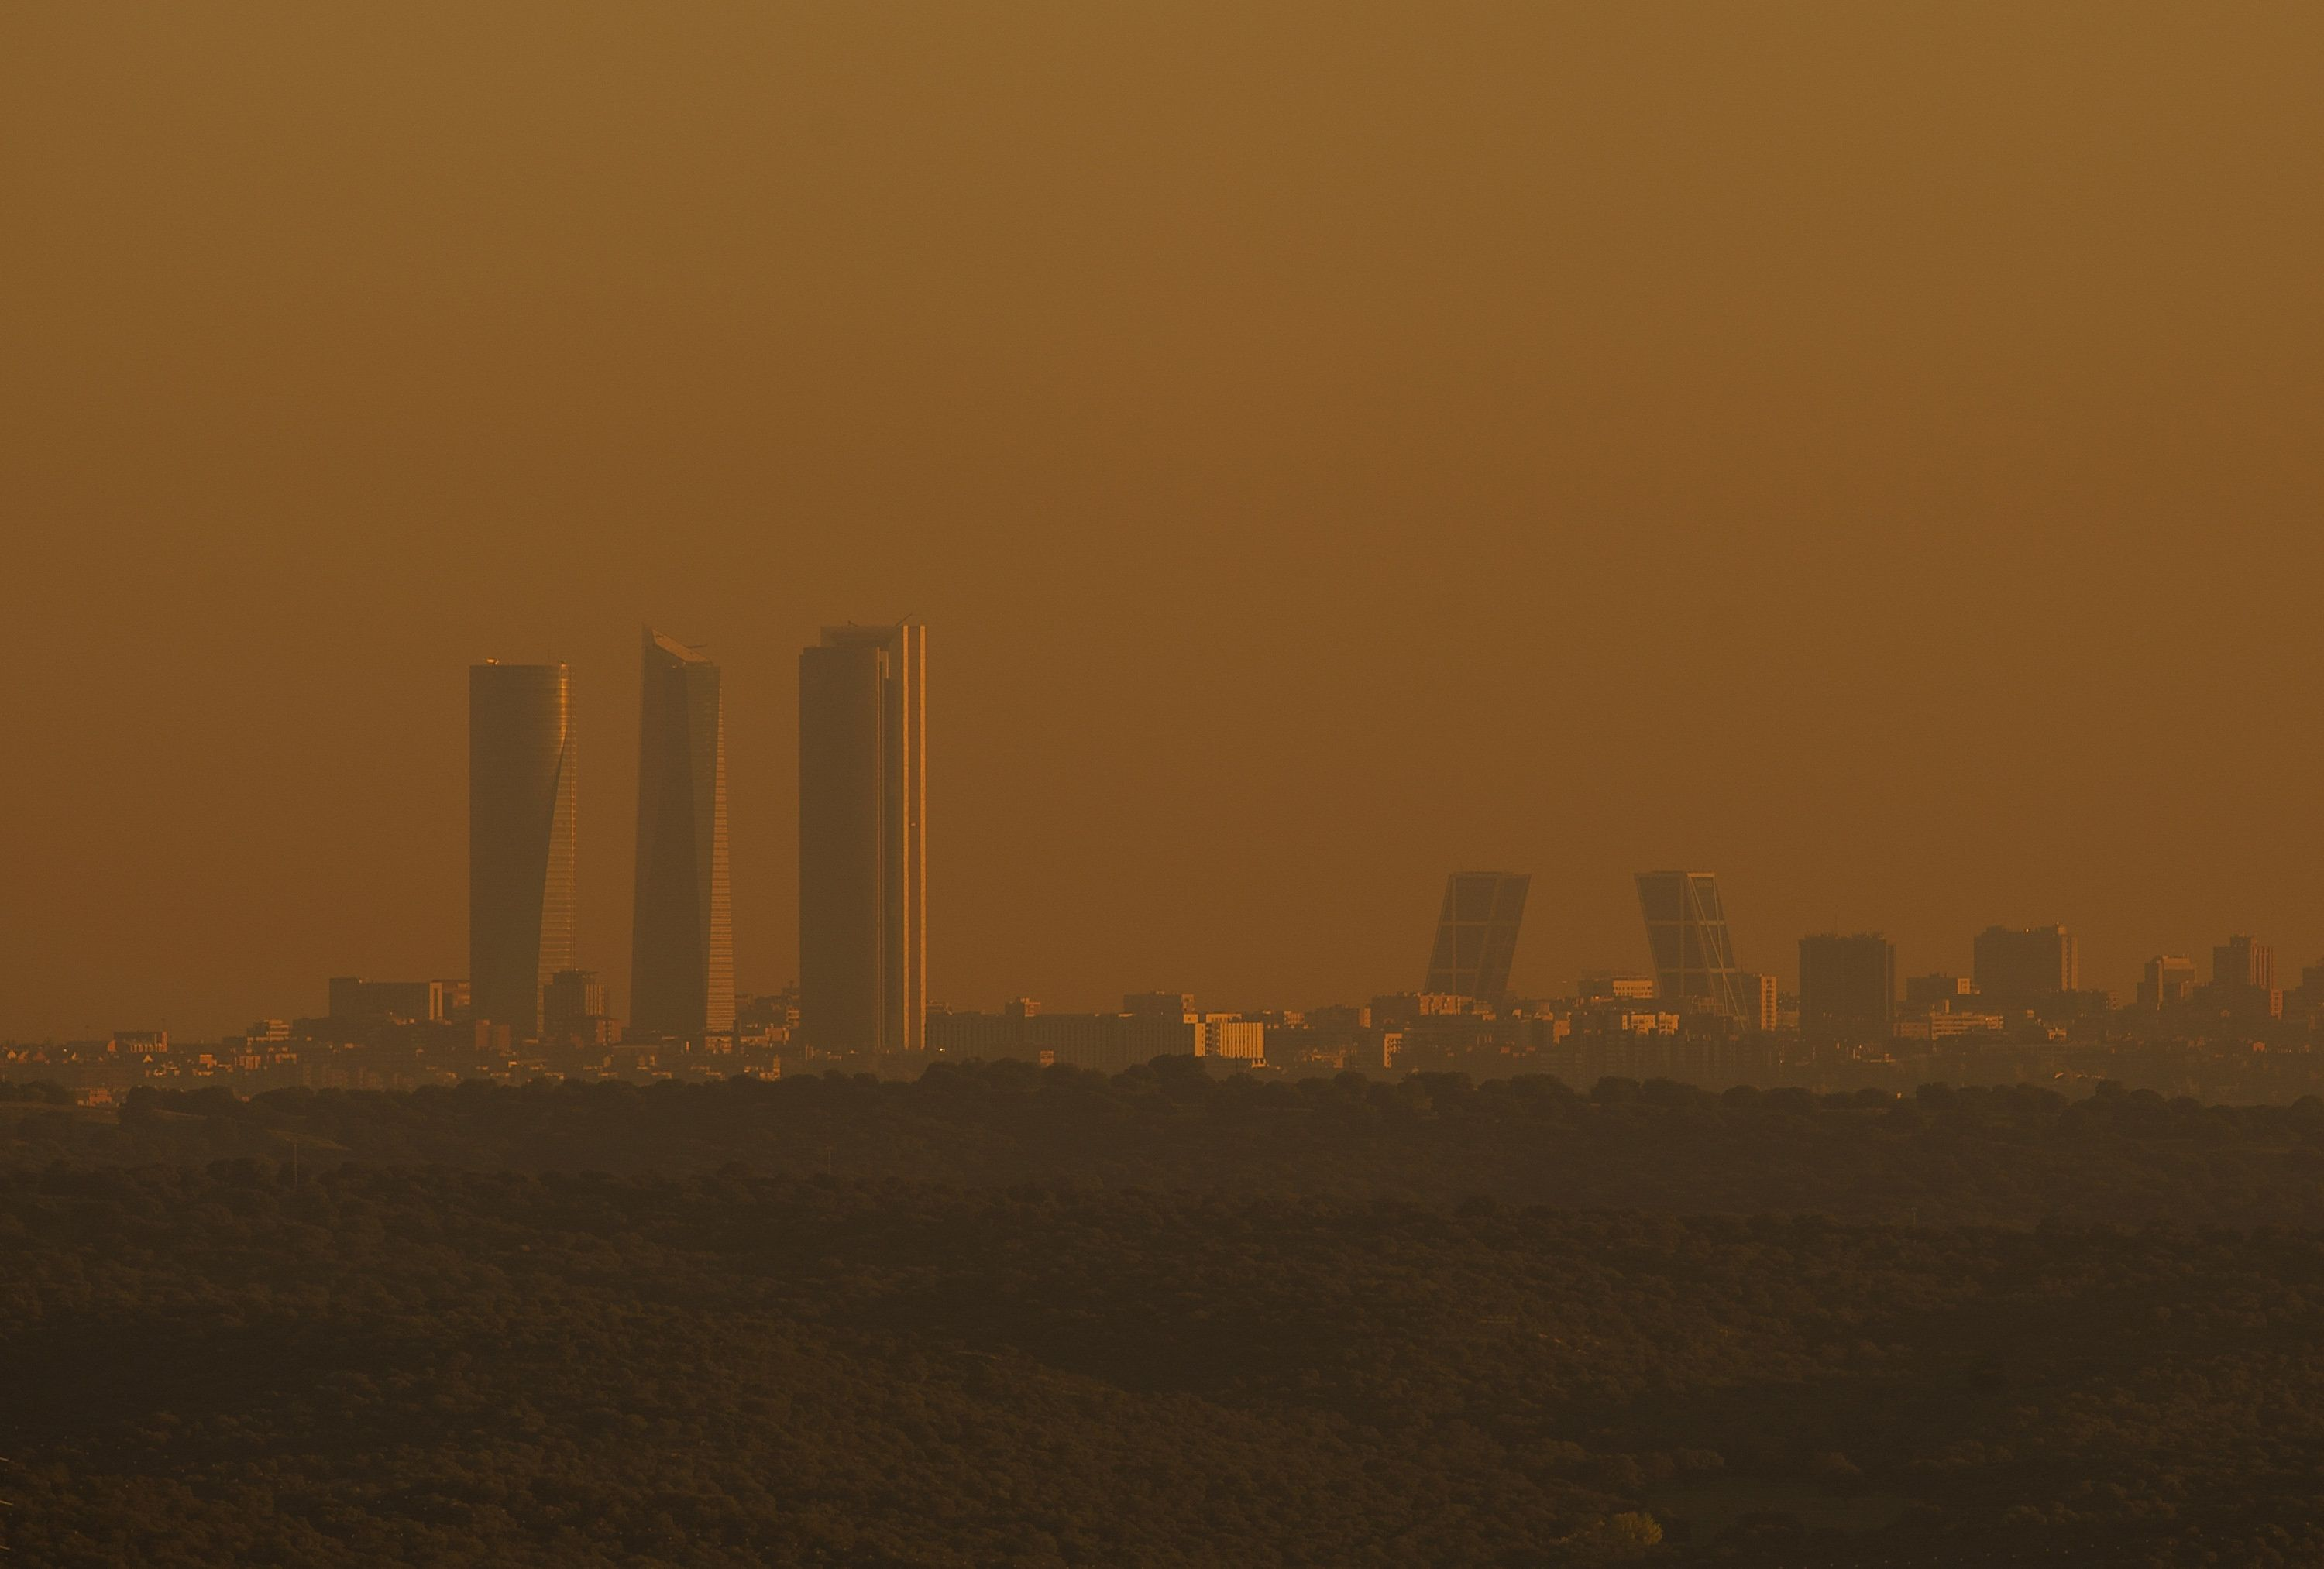 MADRID, SPAIN - NOVEMBER 12:  View of the city skyline seen after Madrid City Council reduced the speed limit on roads approaching and around the Spanish capital to 70km per hour on November 12, 2015 in Madrid, Spain. The measures were taken after authorities revealed excessive nitrogen dioxide pollutant levels across the city.  (Photo by Denis Doyle/Getty Images)